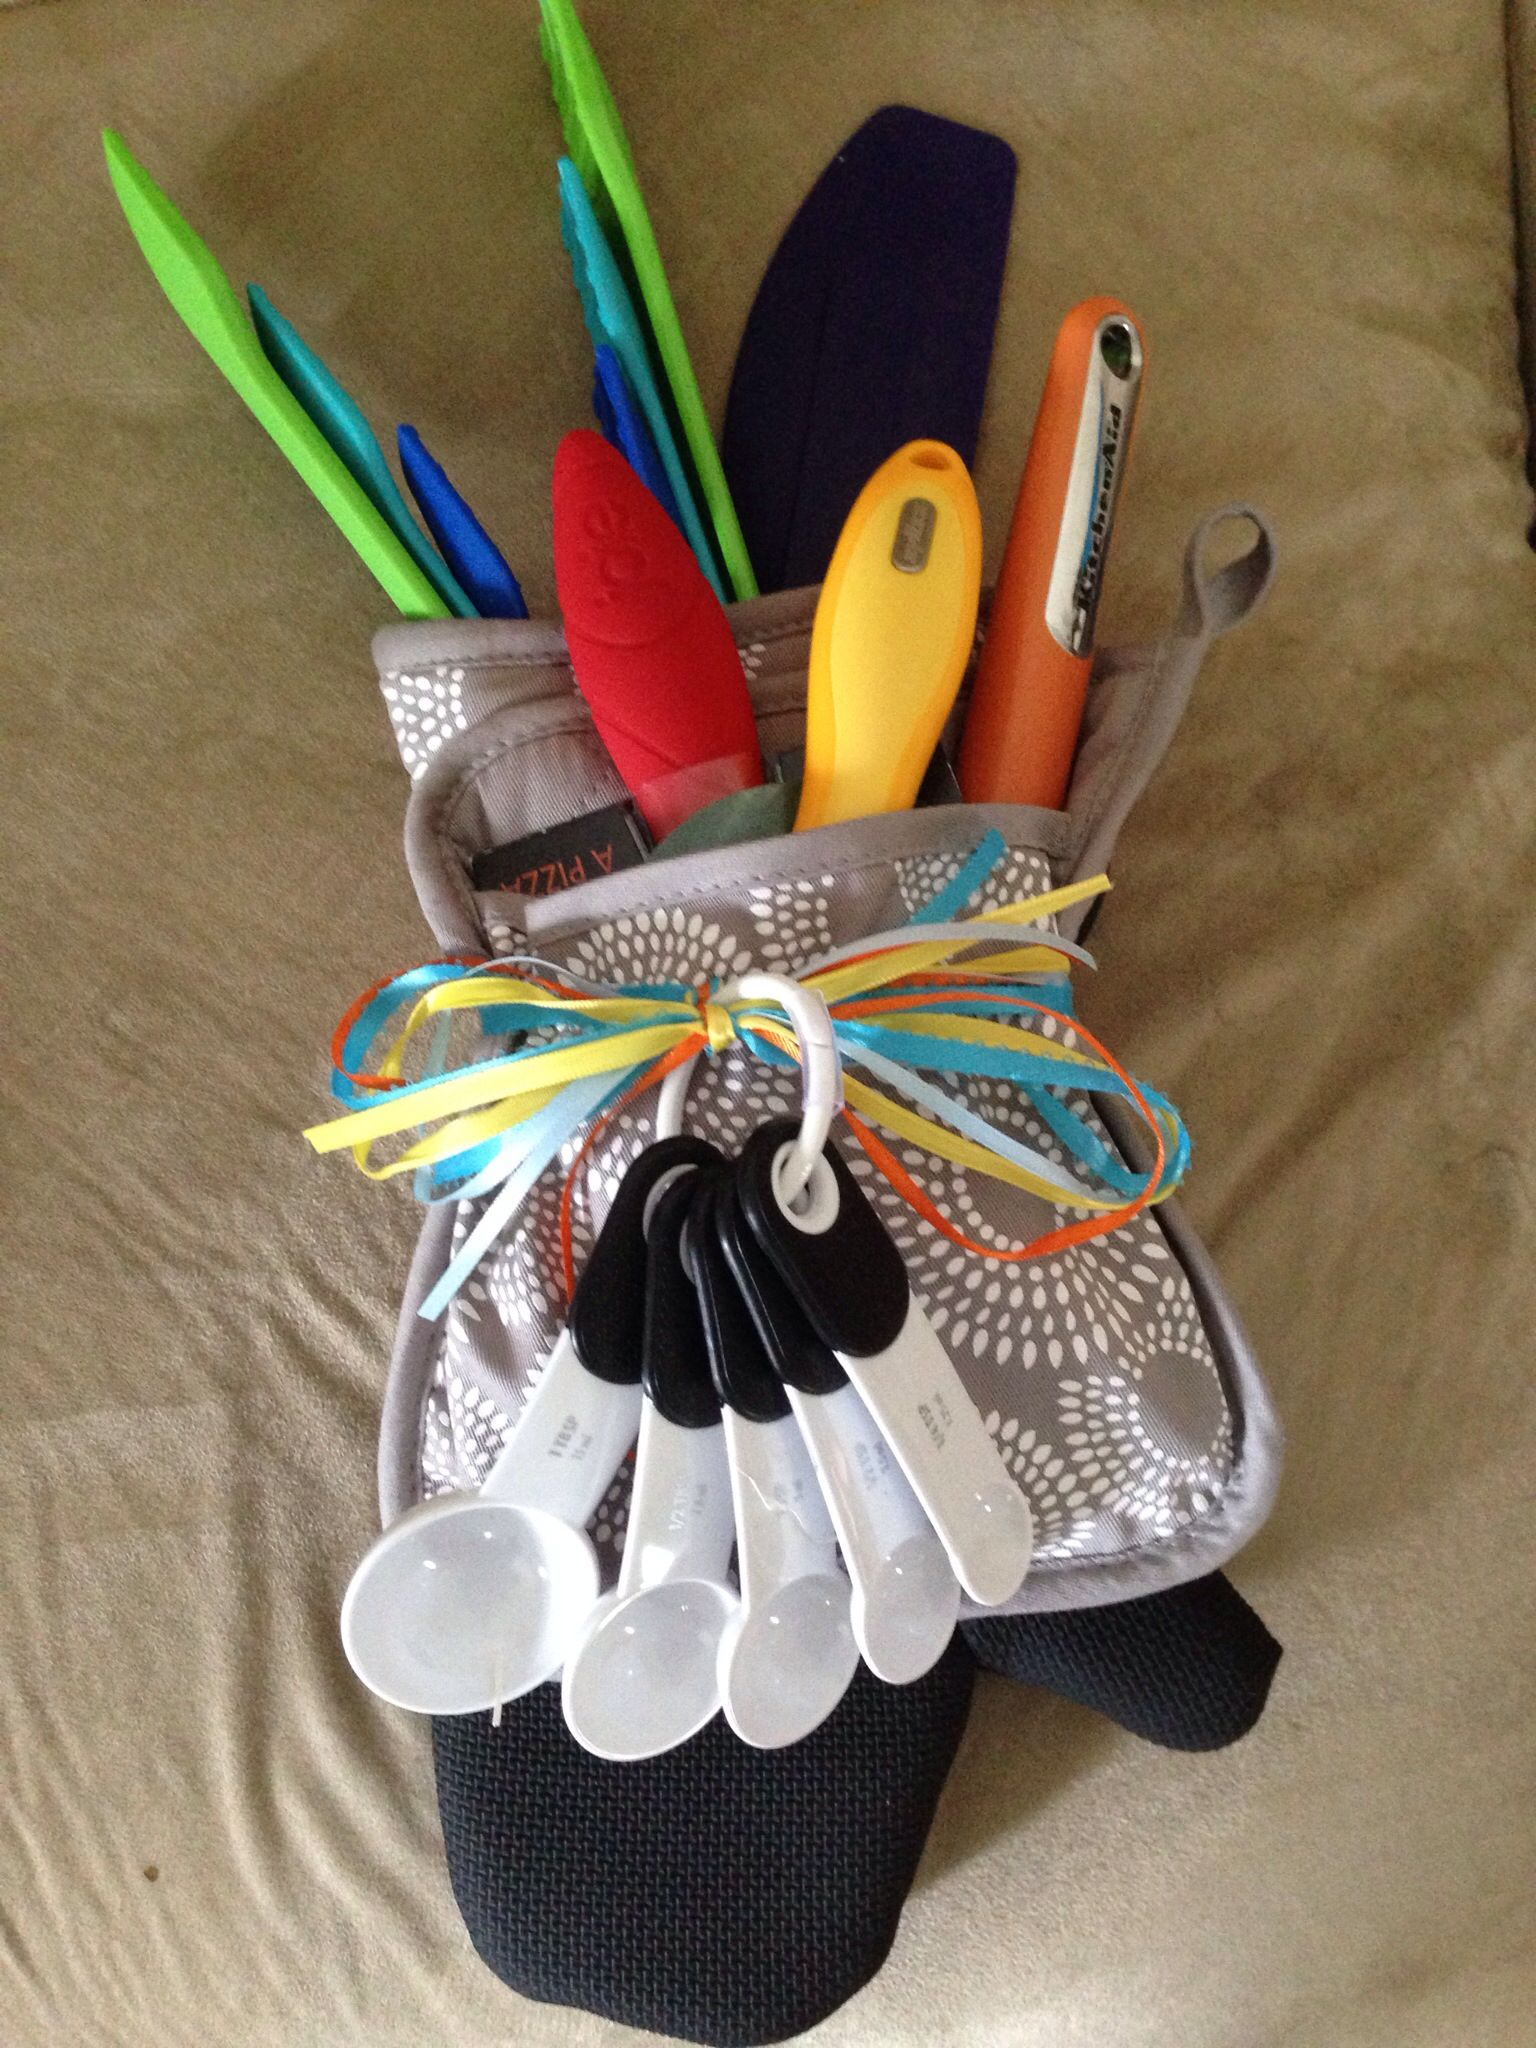 Utensils And Kitchen Gadgets In A Potholder And Oven Mitt For A